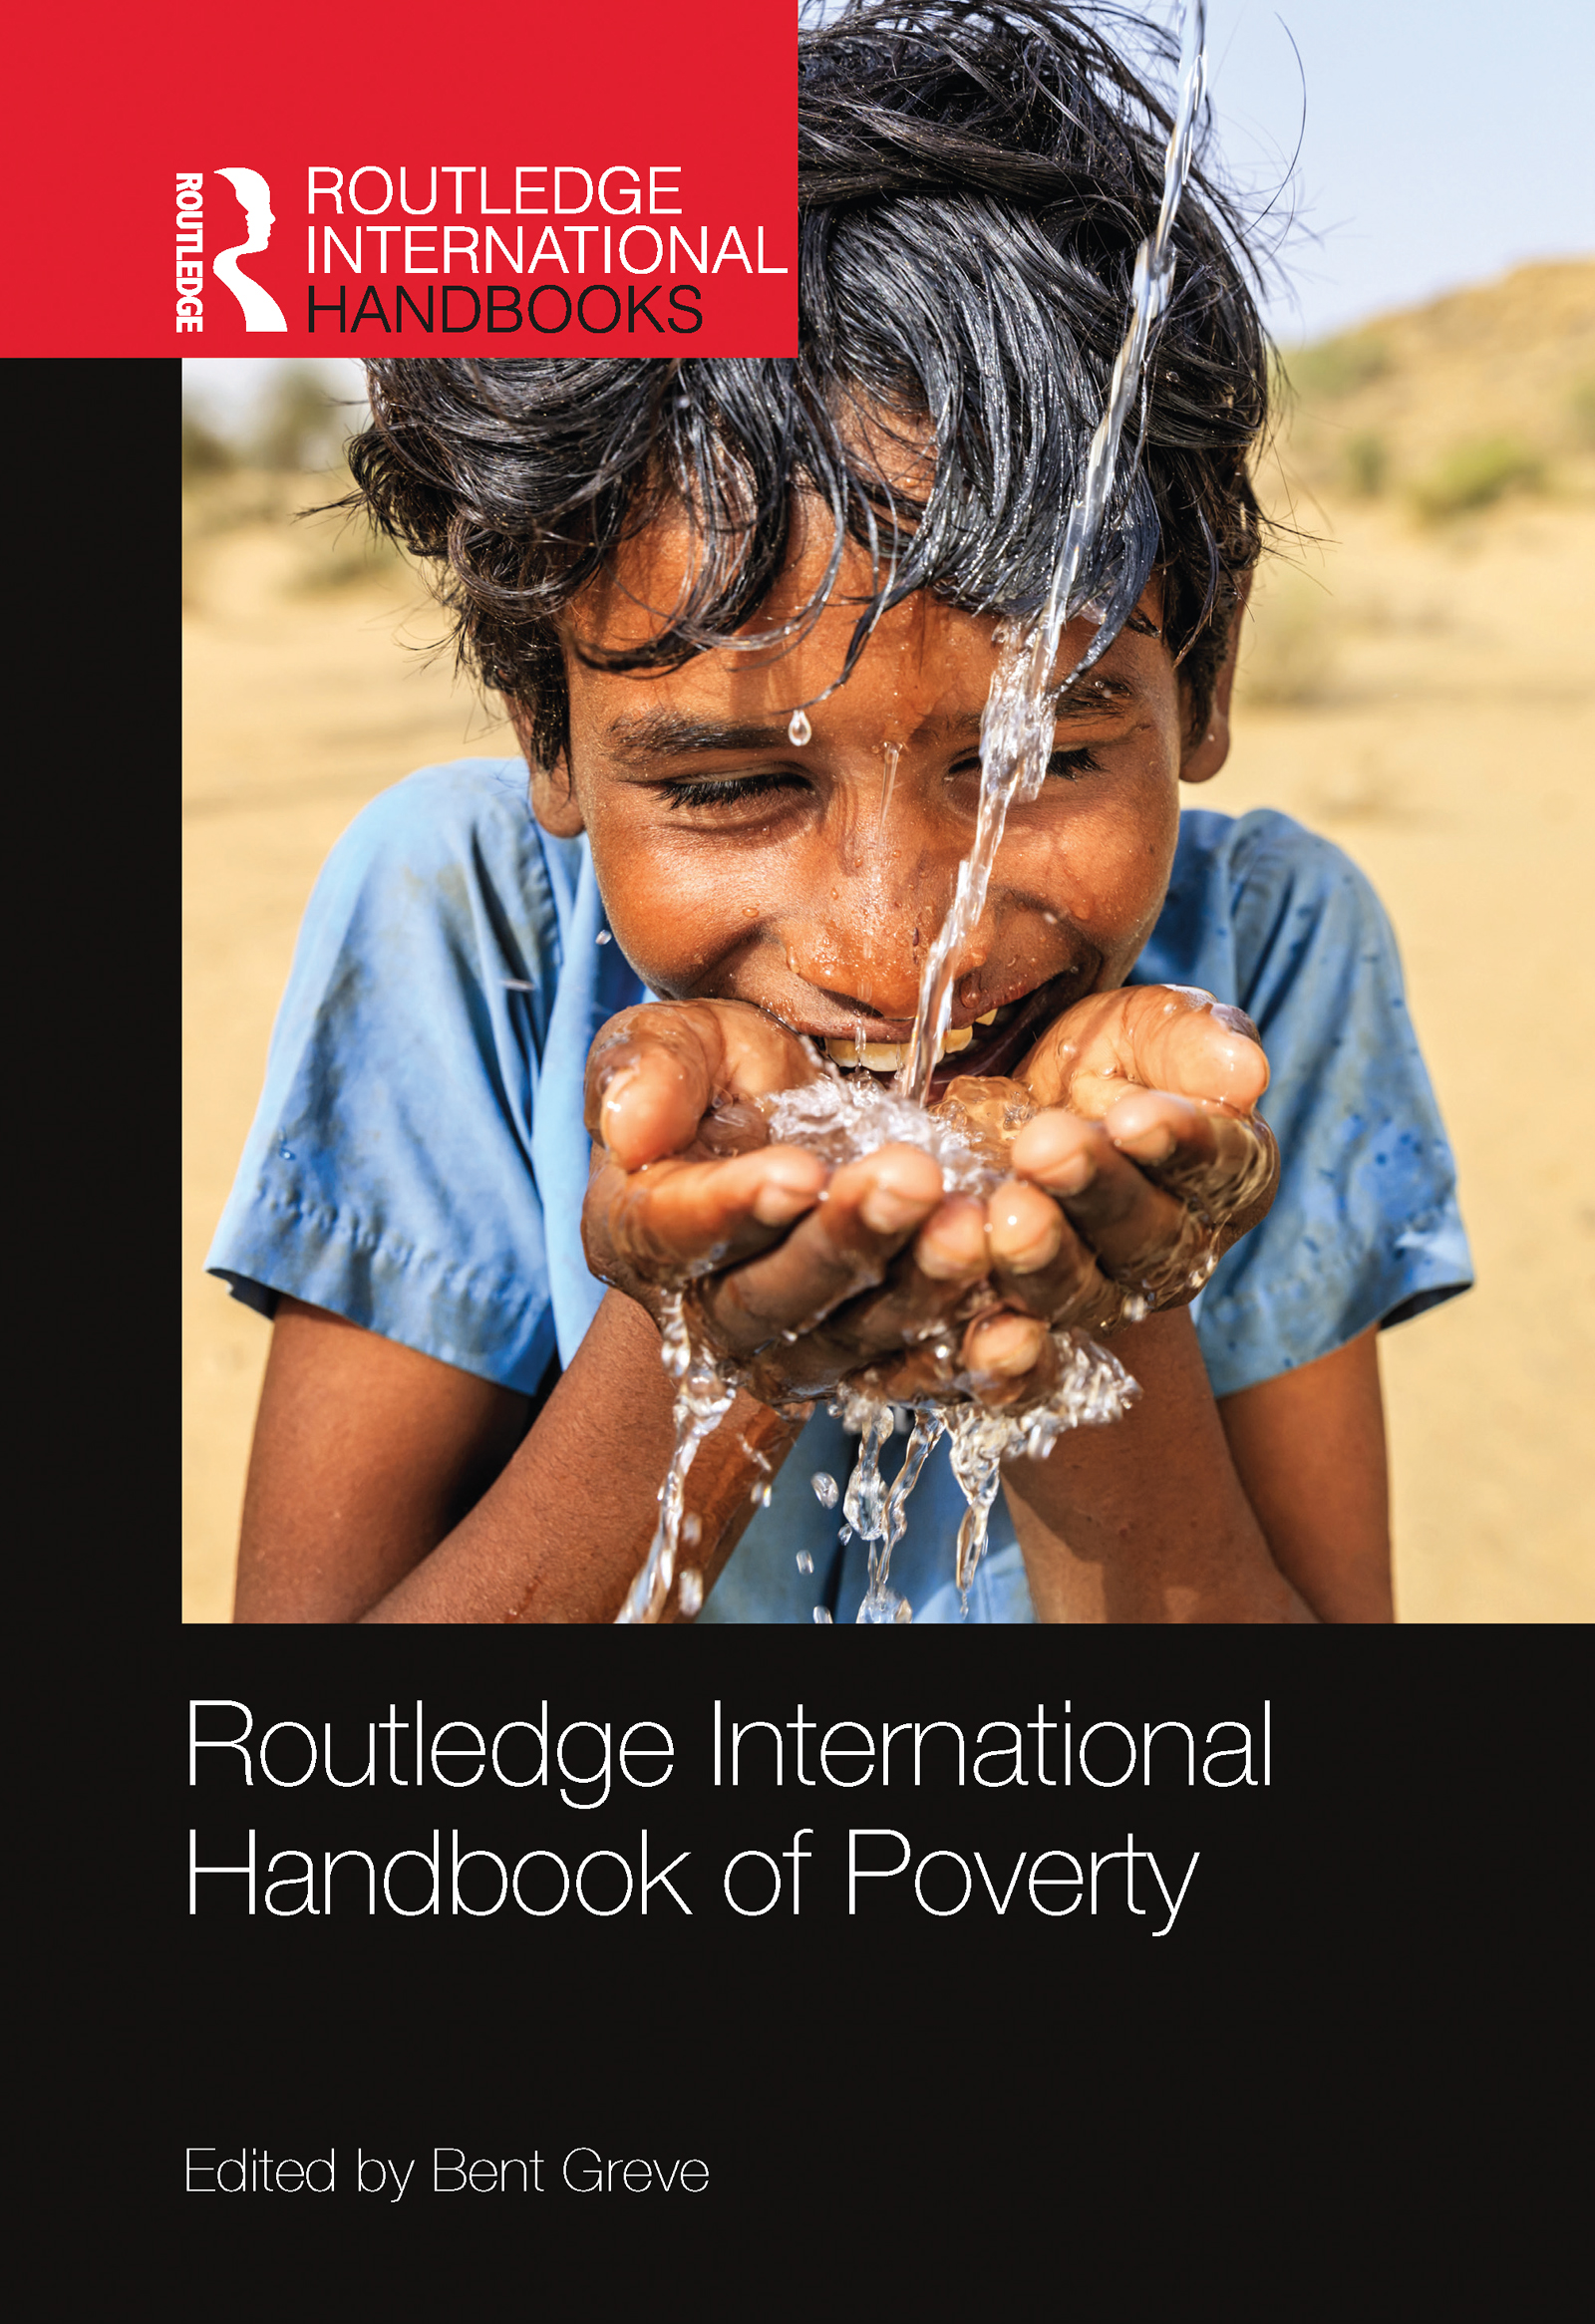 Routledge International Handbook of Poverty